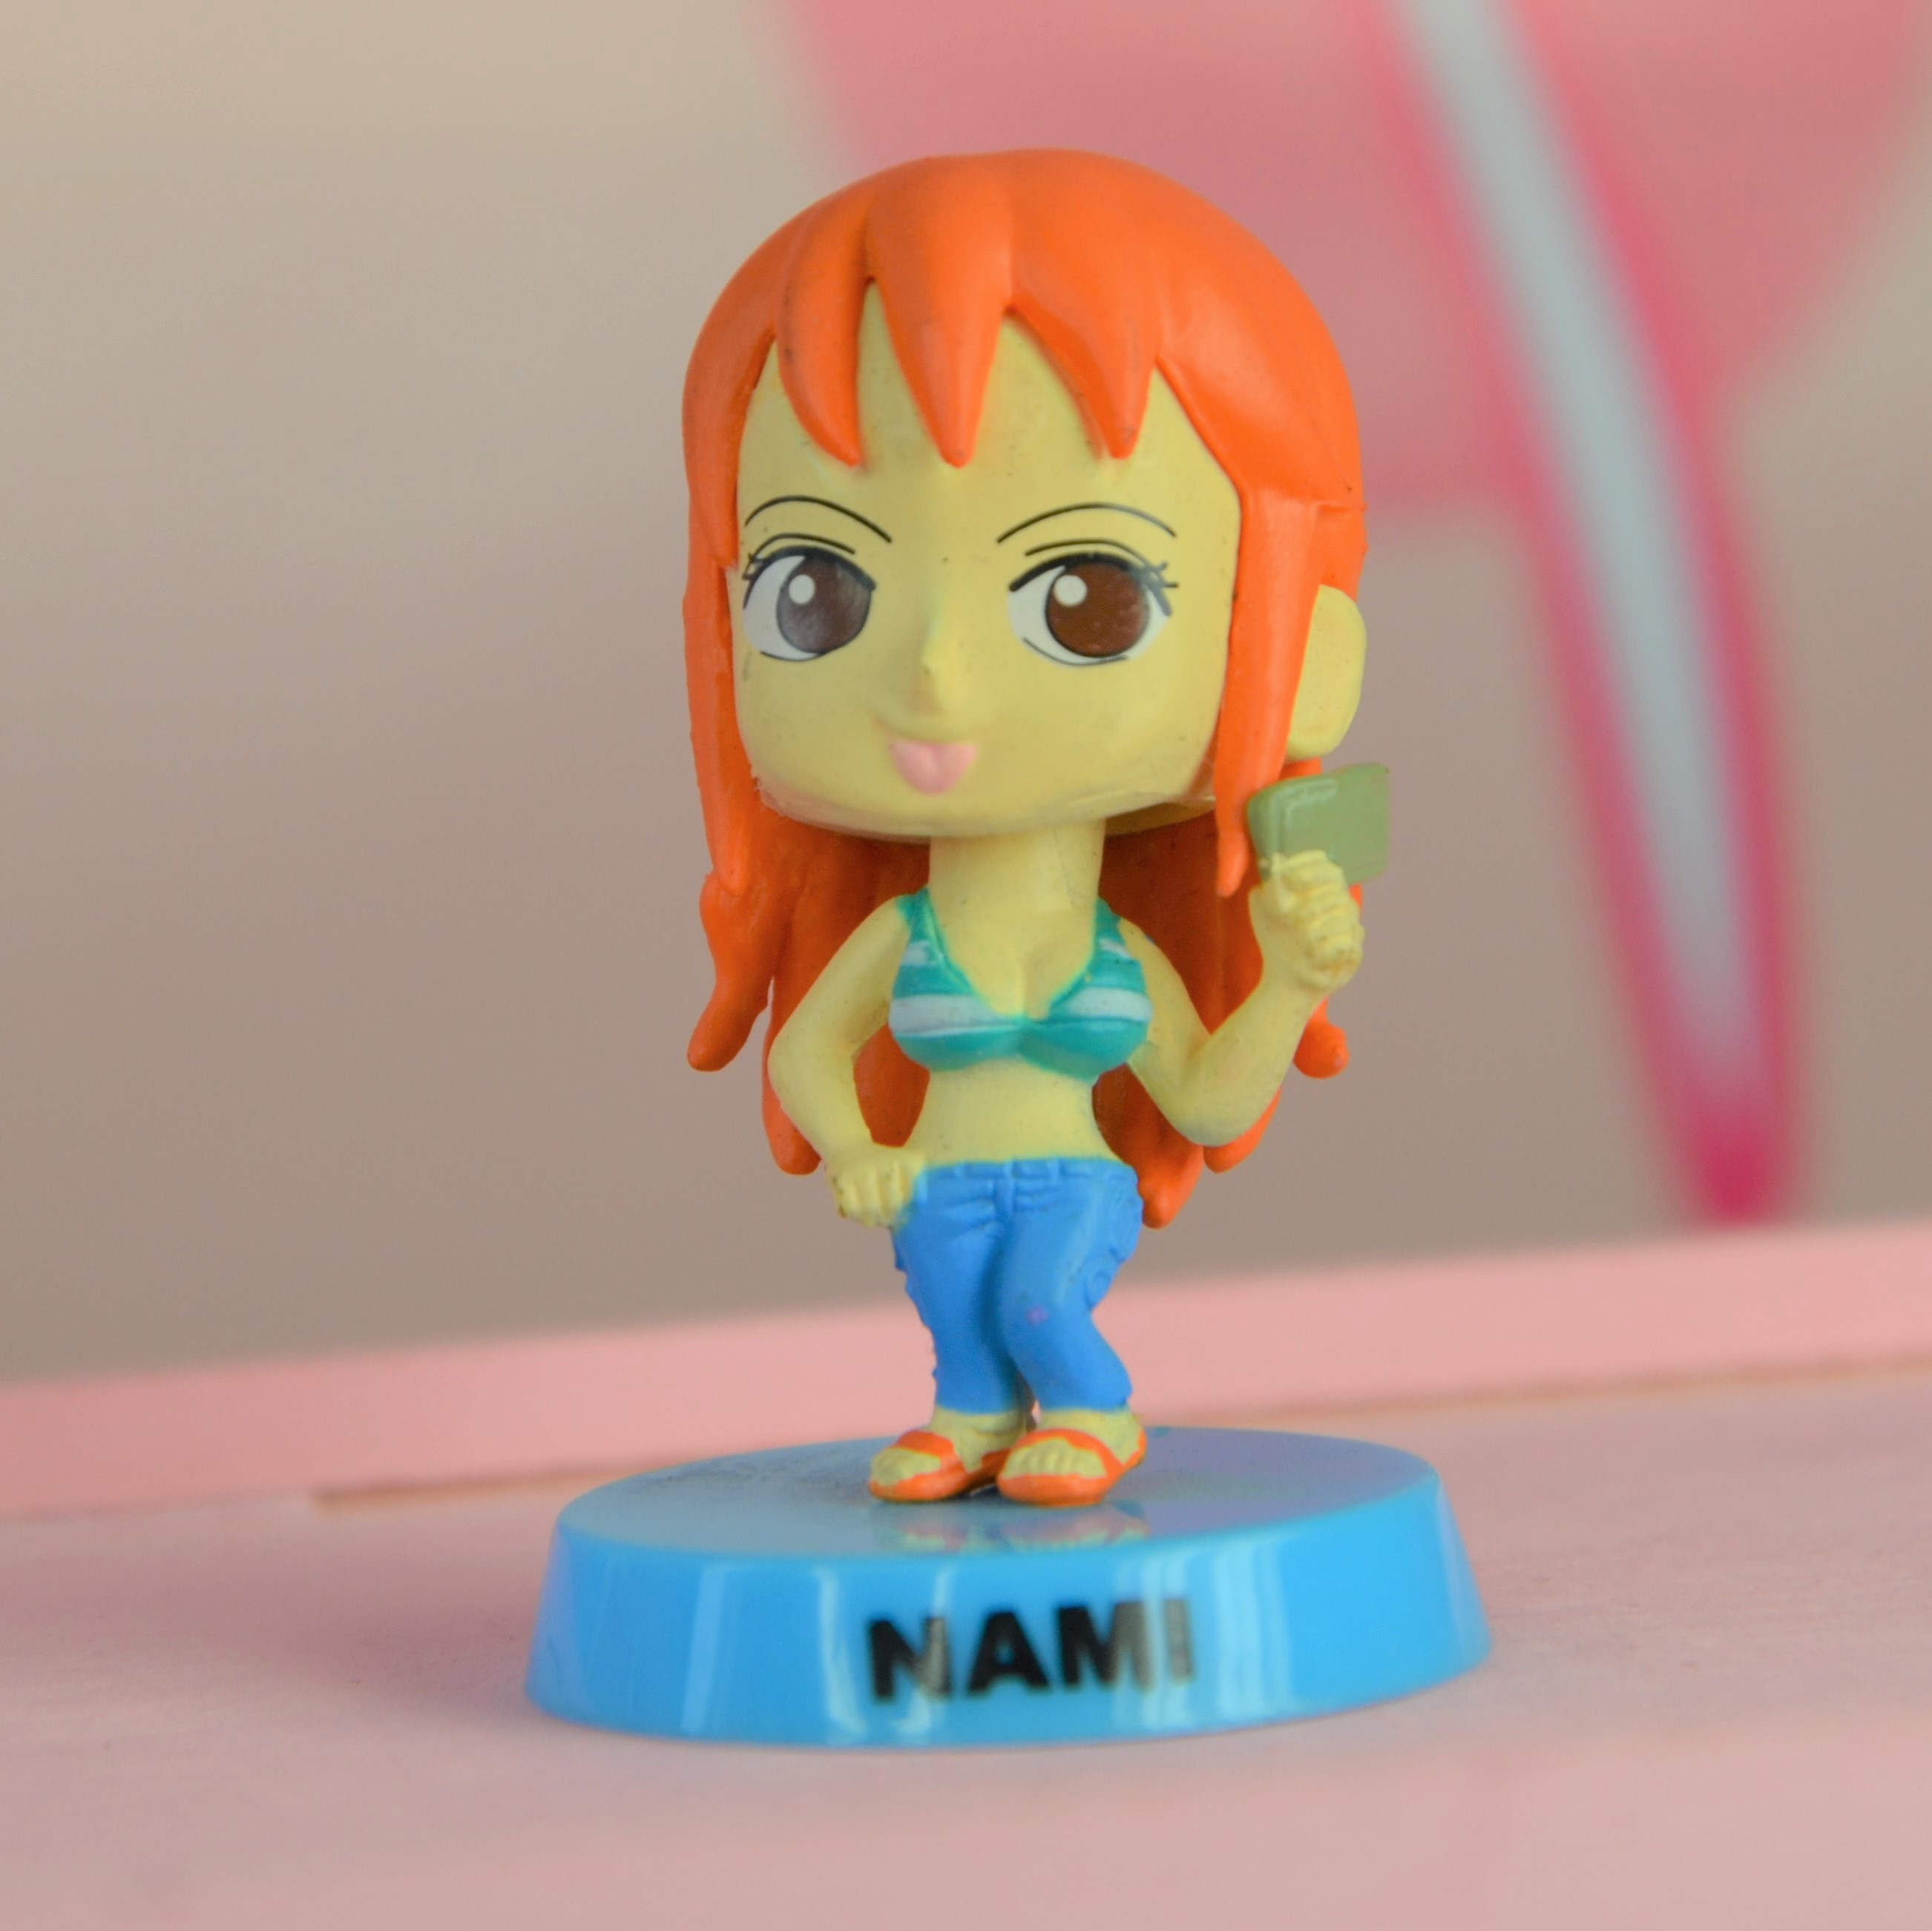 One Piece Nami Bobble Head Figure - Moving Head